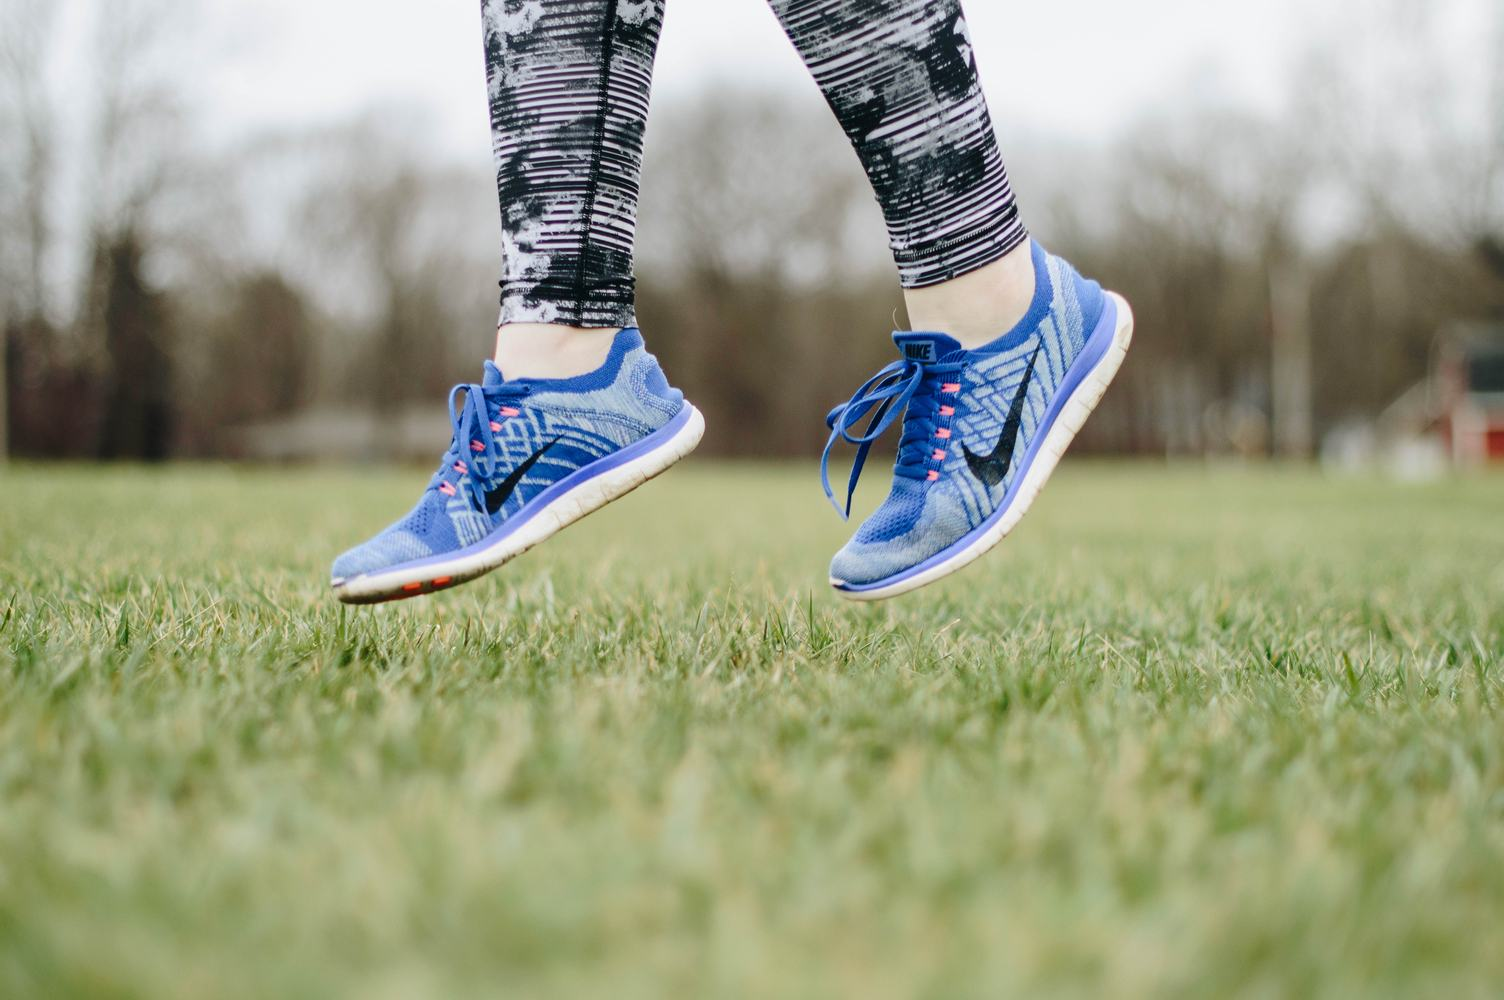 Closeup of Female Legs Wearing Blue Sneakers Jumping on the Grass Outdoors